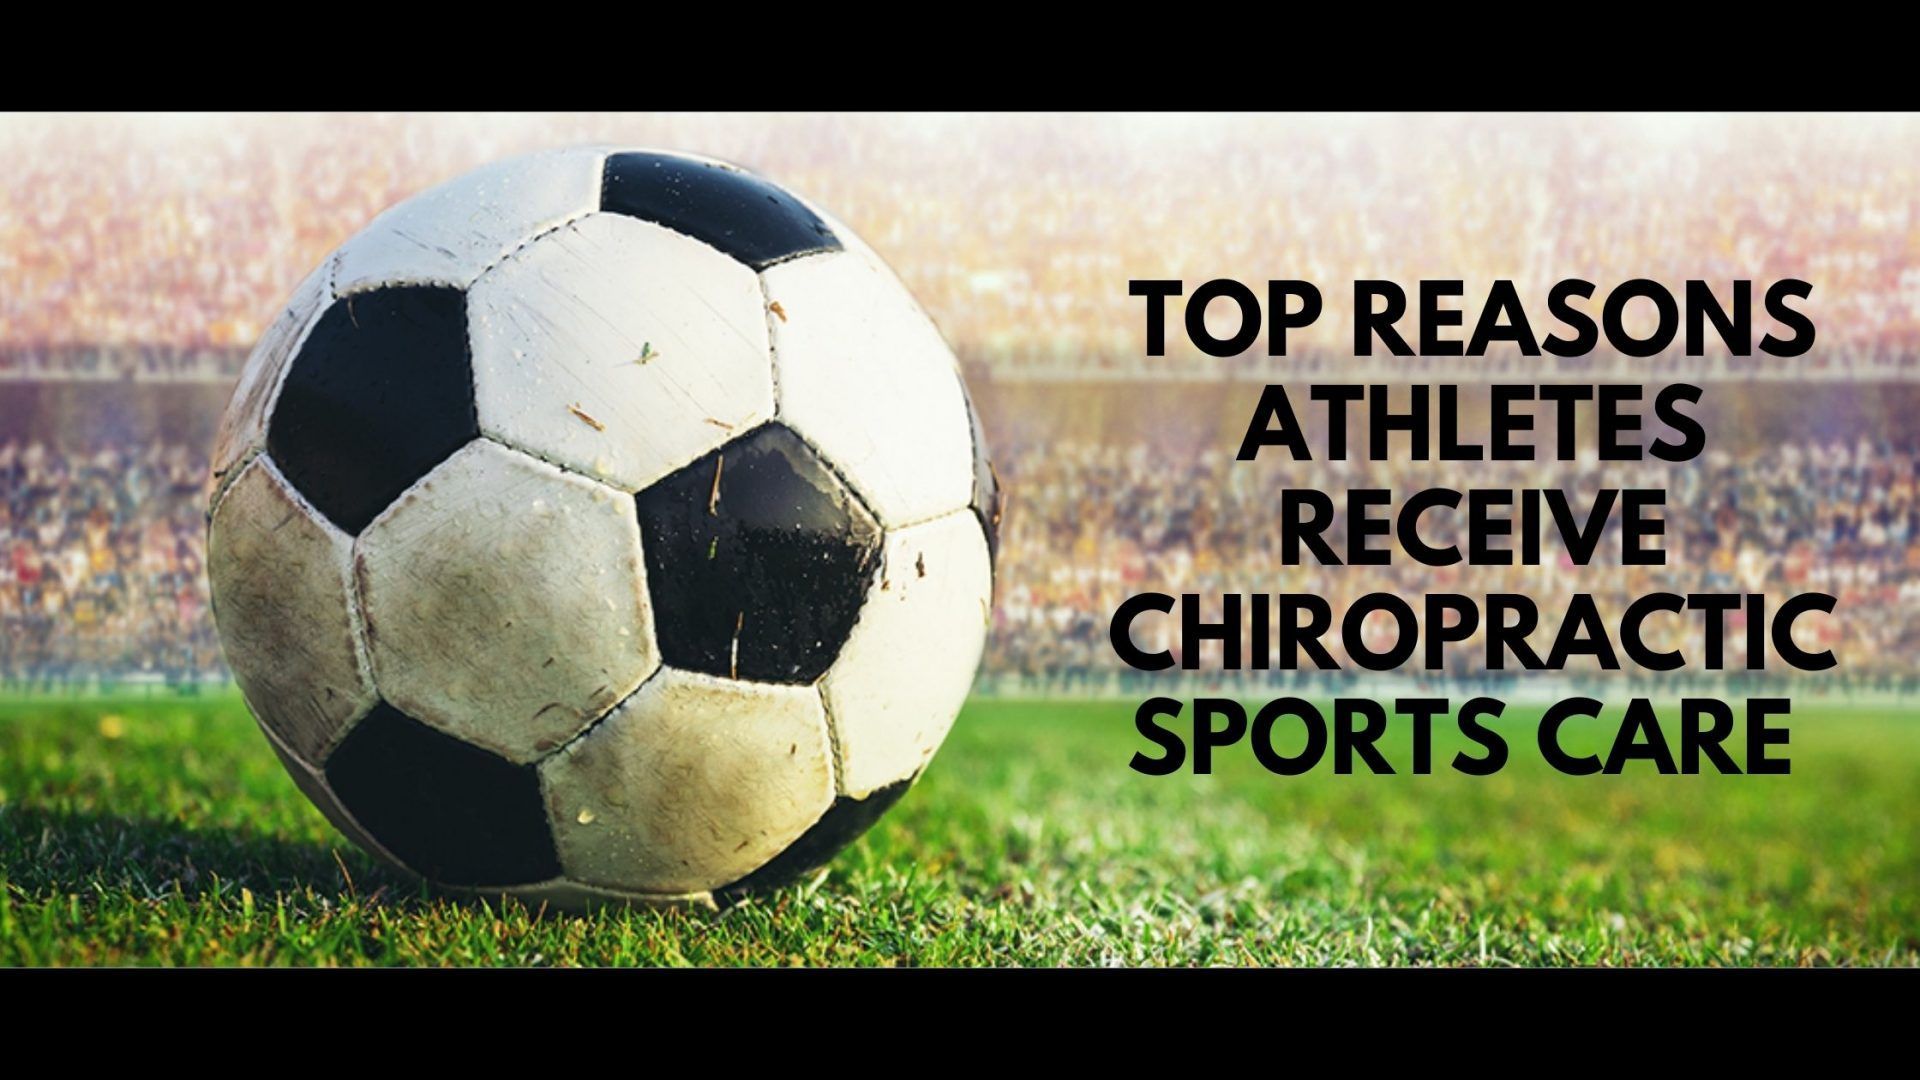 Top Reasons, Athletes Receive Chiropractic Sports Care